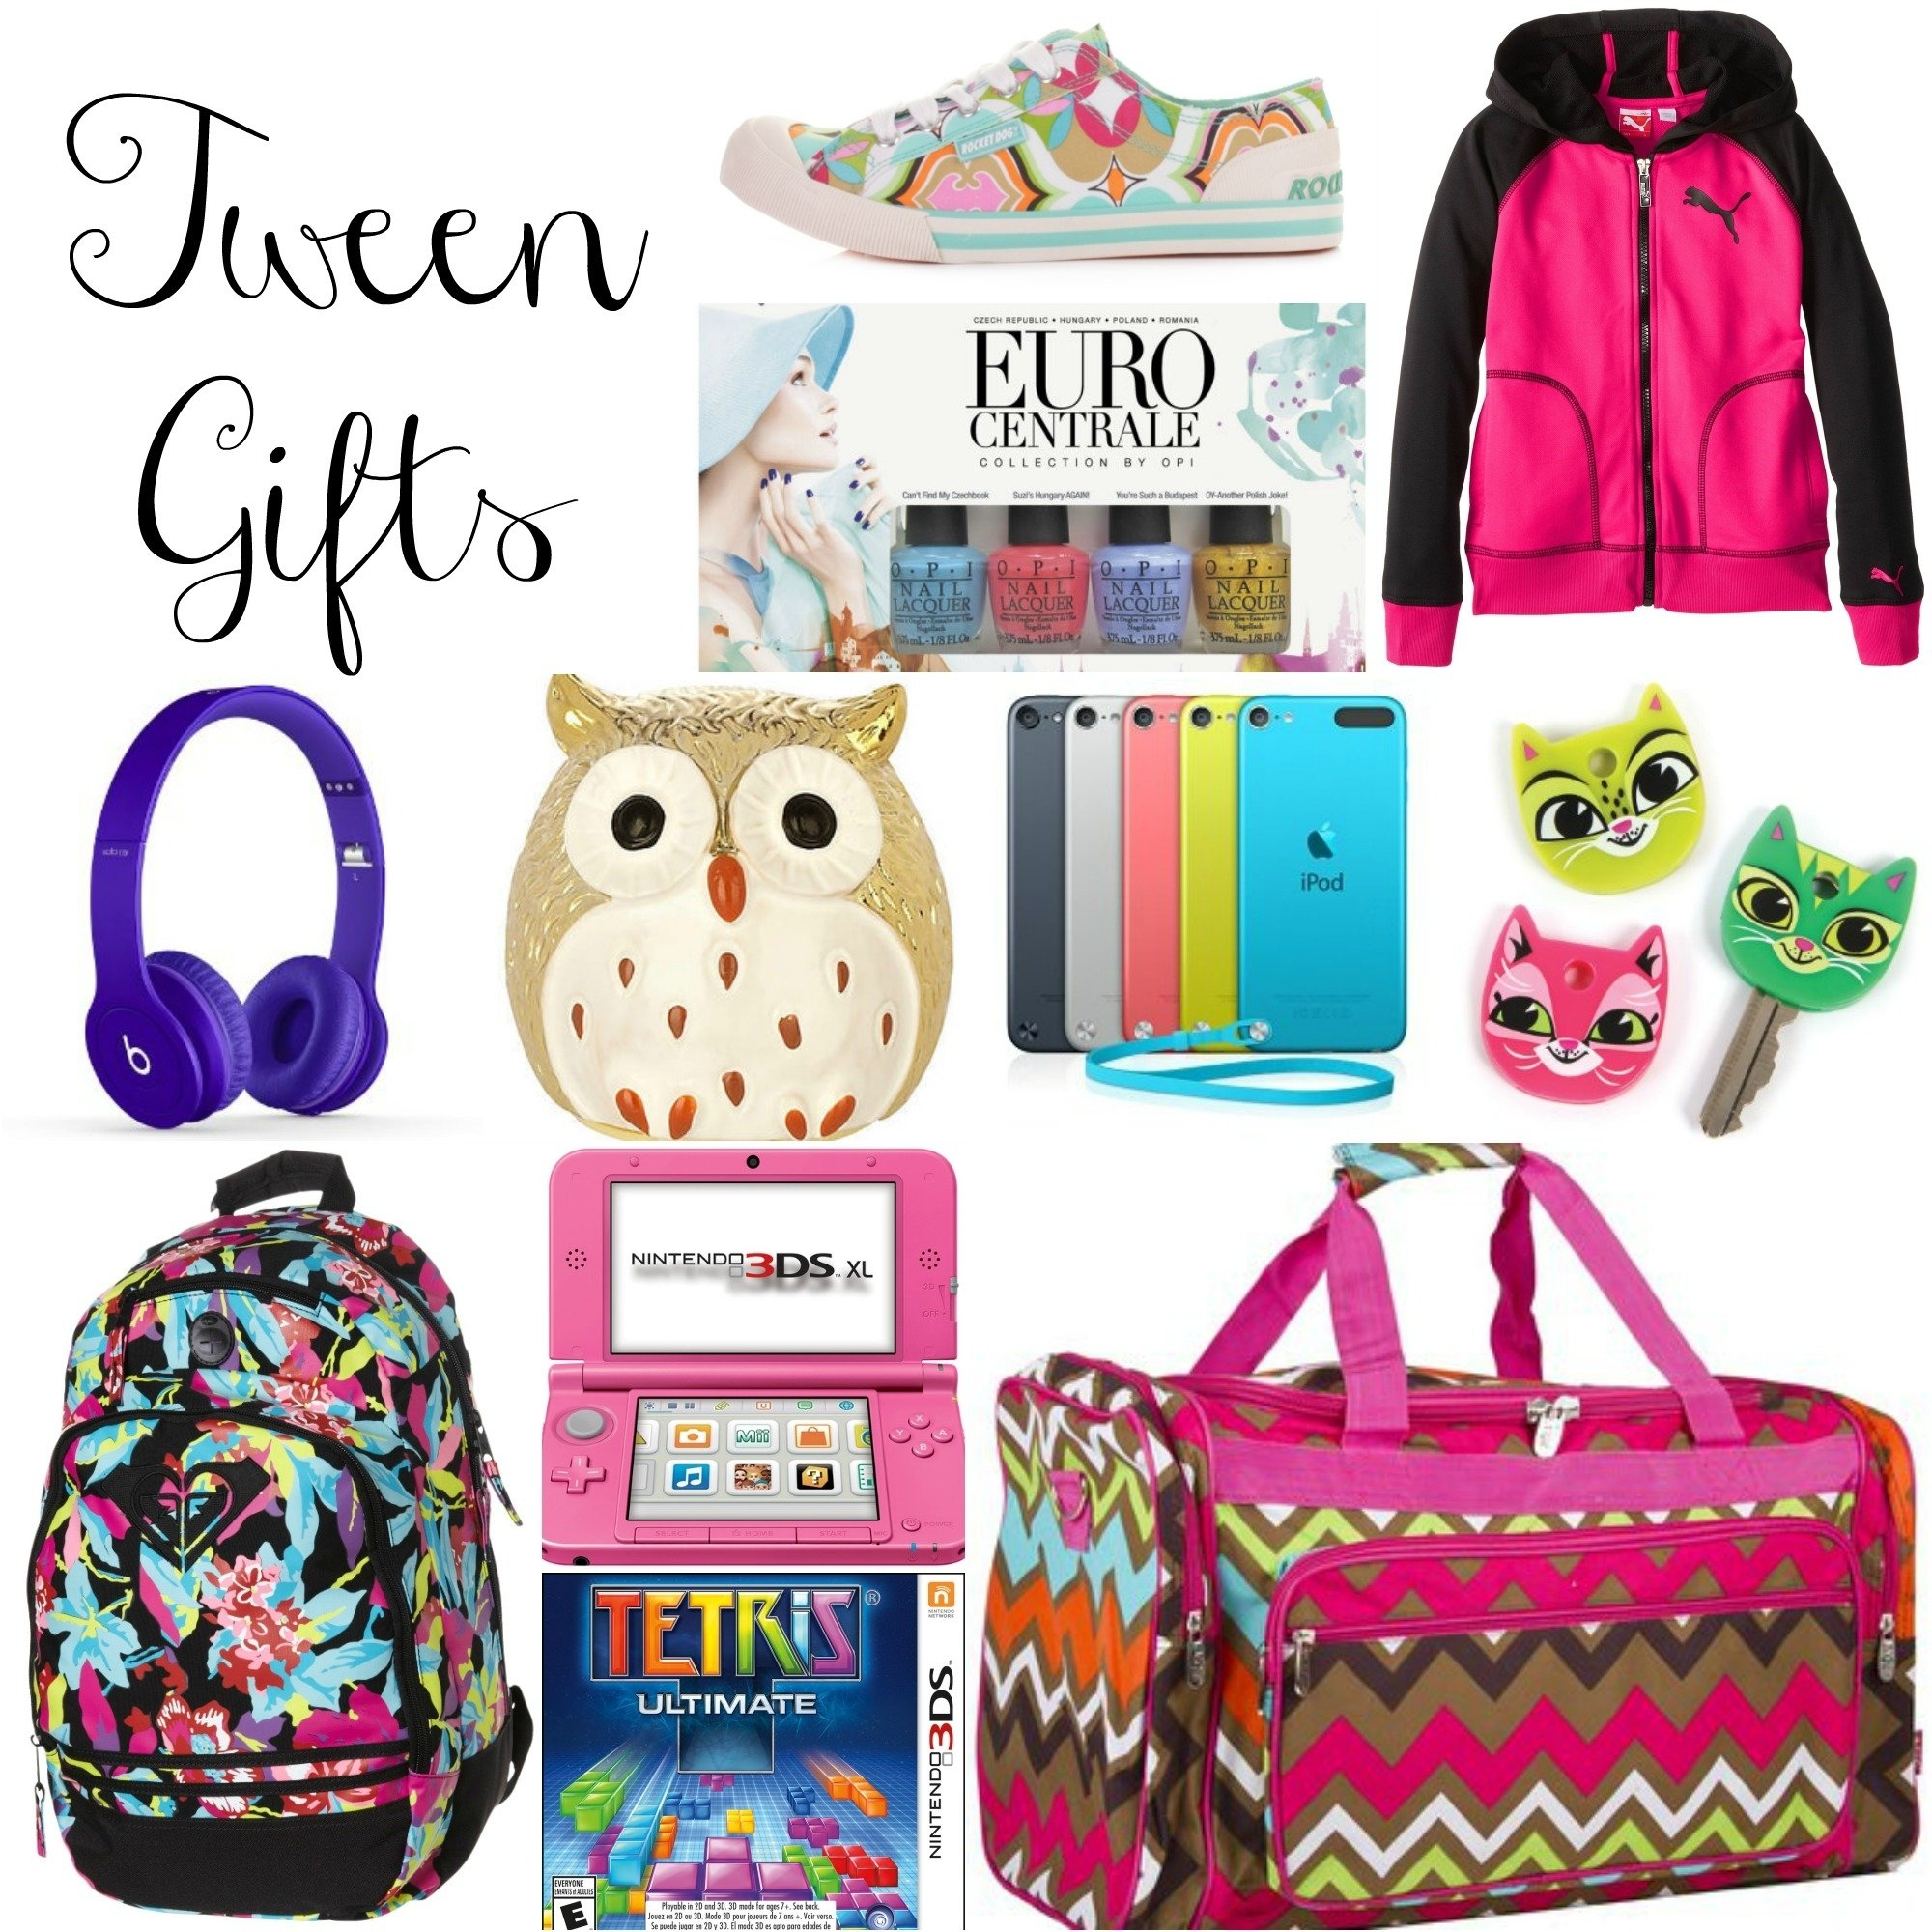 10 Unique Christmas Gift Ideas For Tweens 21 great gifts for tweens confessions of a 2020